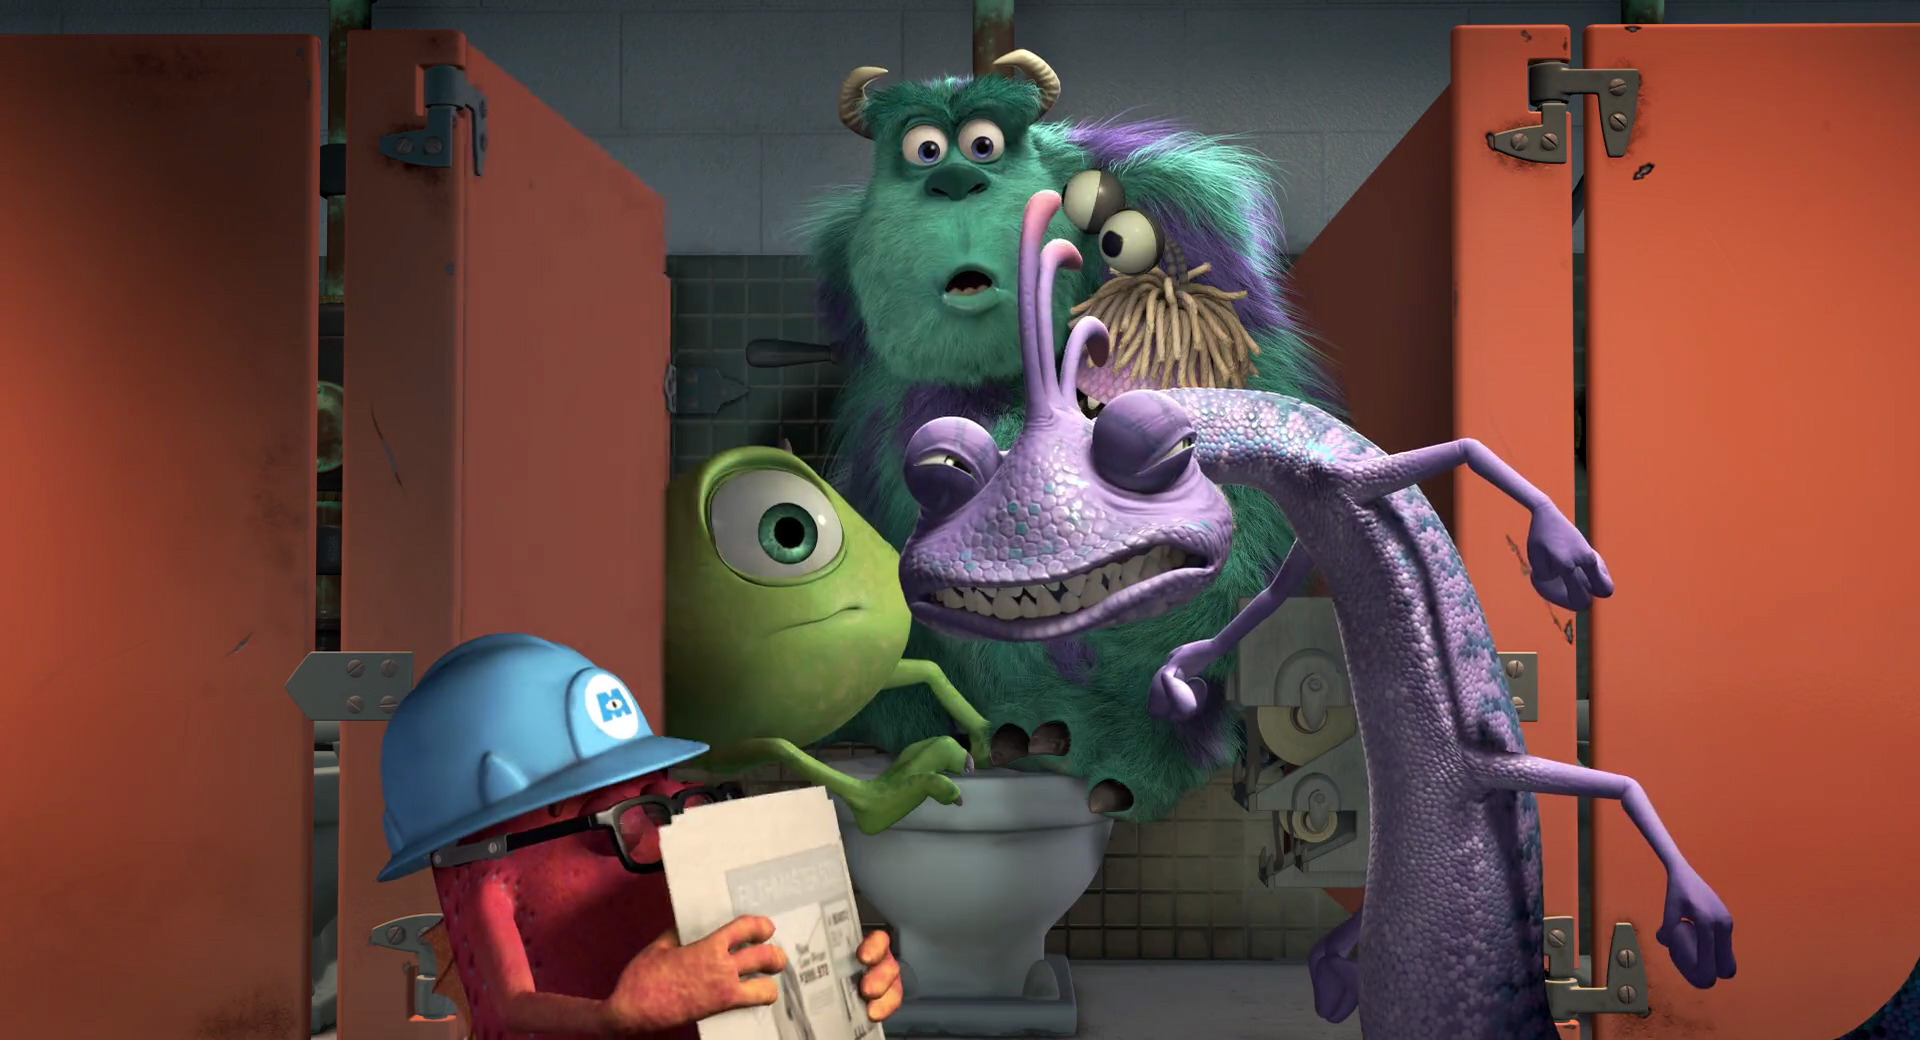 Tony Monsters Inc Disney Wiki Fandom Powered By Wikia